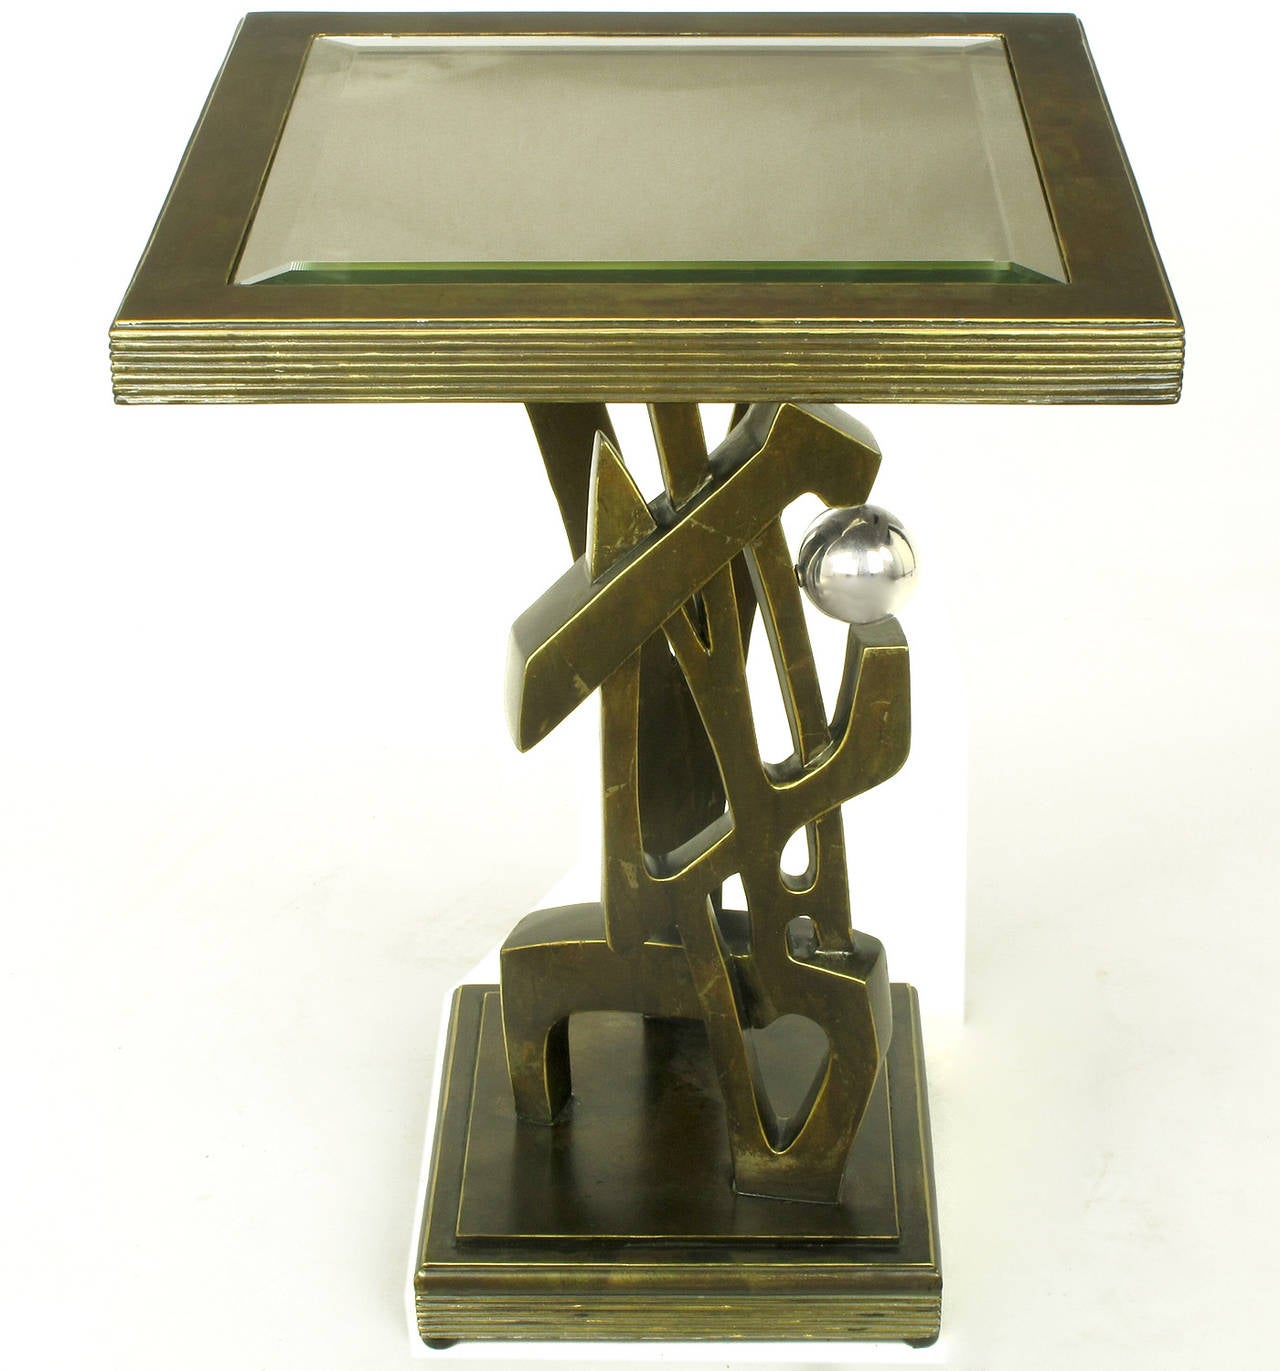 Artisan sculpted bronze over resin and metal side table. Architecturally inspired body on tiered plinth base with metal V-shaped support and chrome ball. Top is cast resin and metal with a beveled mirror insert. Unsigned.